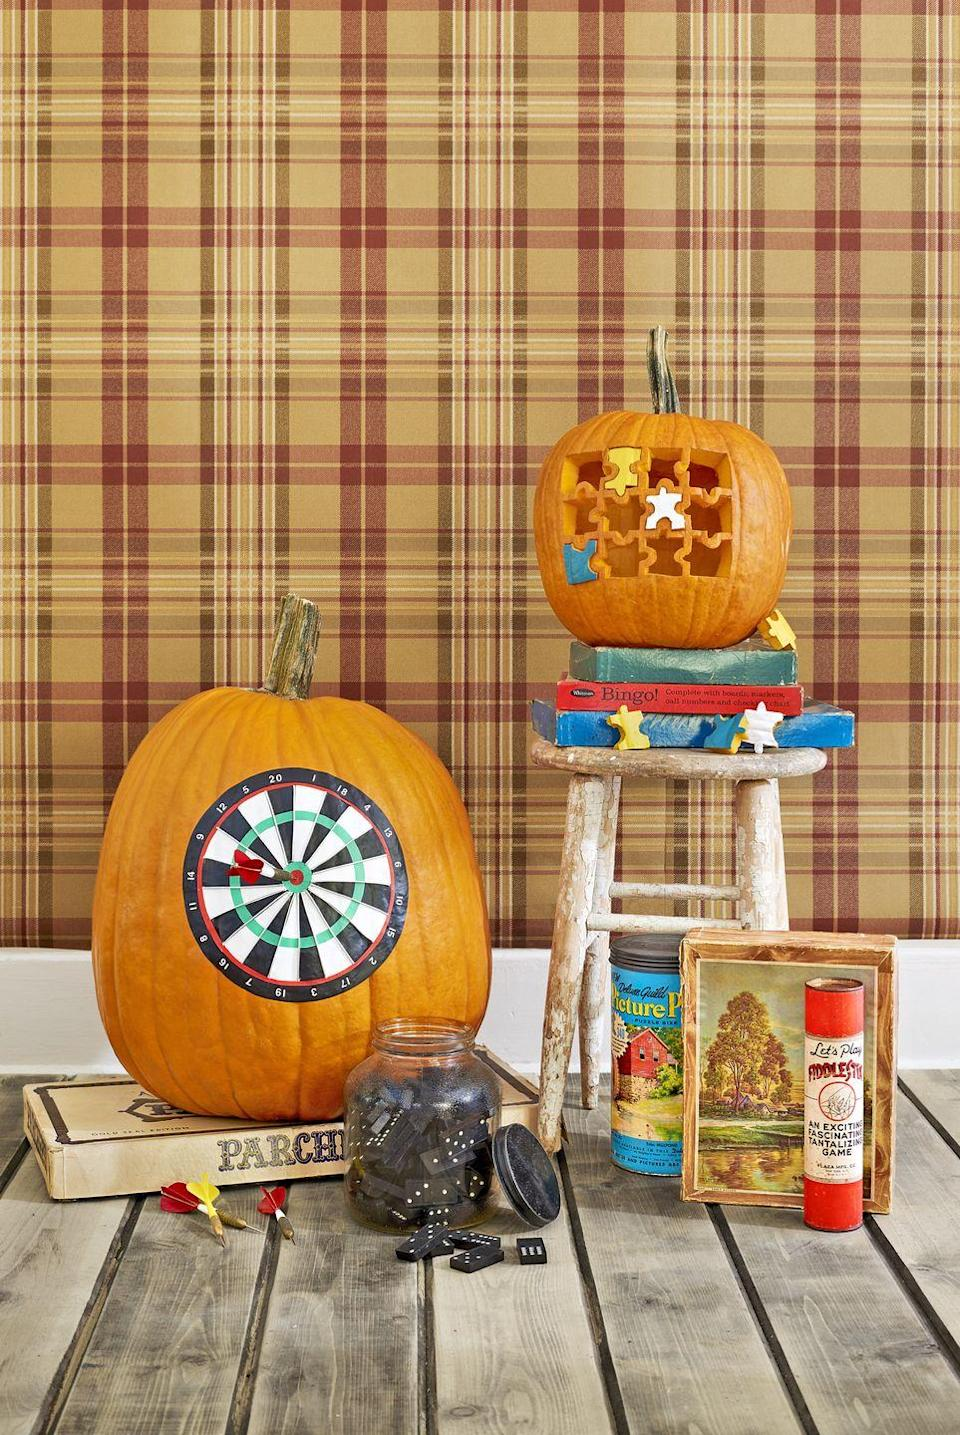 "<p>Scale the <a href=""https://www.countryliving.com/diy-crafts/how-to/a3048/halloween-templates-1009/"" rel=""nofollow noopener"" target=""_blank"" data-ylk=""slk:dartboard template"" class=""link rapid-noclick-resp"">dartboard template</a> up or down as necessary. Use template to cut 10 triangles from white contact paper and 10 triangles from black contact paper. Adhere to the pumpkin, lining up the edges, as shown above. Use template to cut rings from black, red, and green contact paper. Adhere the large black ring on the outside of the triangles, overlapping the edges slightly. Adhere the red ring along the inside edge of the black ring, overlapping edges slightly. Adhere the green ring on the dartboard. Use the template to cut small circles from green and red contact paper; adhere to the center of the board. Hot-glue silver cording along the seams of the white and black triangles. Adhere <a href=""https://www.amazon.com/Headline-Sign-31741-Letters-Numbers/dp/B000GP08K6/ref=sr_1_9?tag=syn-yahoo-20&ascsubtag=%5Bartid%7C10050.g.1350%5Bsrc%7Cyahoo-us"" rel=""nofollow noopener"" target=""_blank"" data-ylk=""slk:white vinyl stick-on numbers"" class=""link rapid-noclick-resp"">white vinyl stick-on numbers</a> on the black ring. Add darts as desired. </p><p><a class=""link rapid-noclick-resp"" href=""https://www.amazon.com/Tact-Creative-Covering-09F-C9933-12-Adhesive/dp/B001B02U5G/?tag=syn-yahoo-20&ascsubtag=%5Bartid%7C10050.g.1350%5Bsrc%7Cyahoo-us"" rel=""nofollow noopener"" target=""_blank"" data-ylk=""slk:SHOP CONTACT PAPER"">SHOP CONTACT PAPER</a><br></p>"